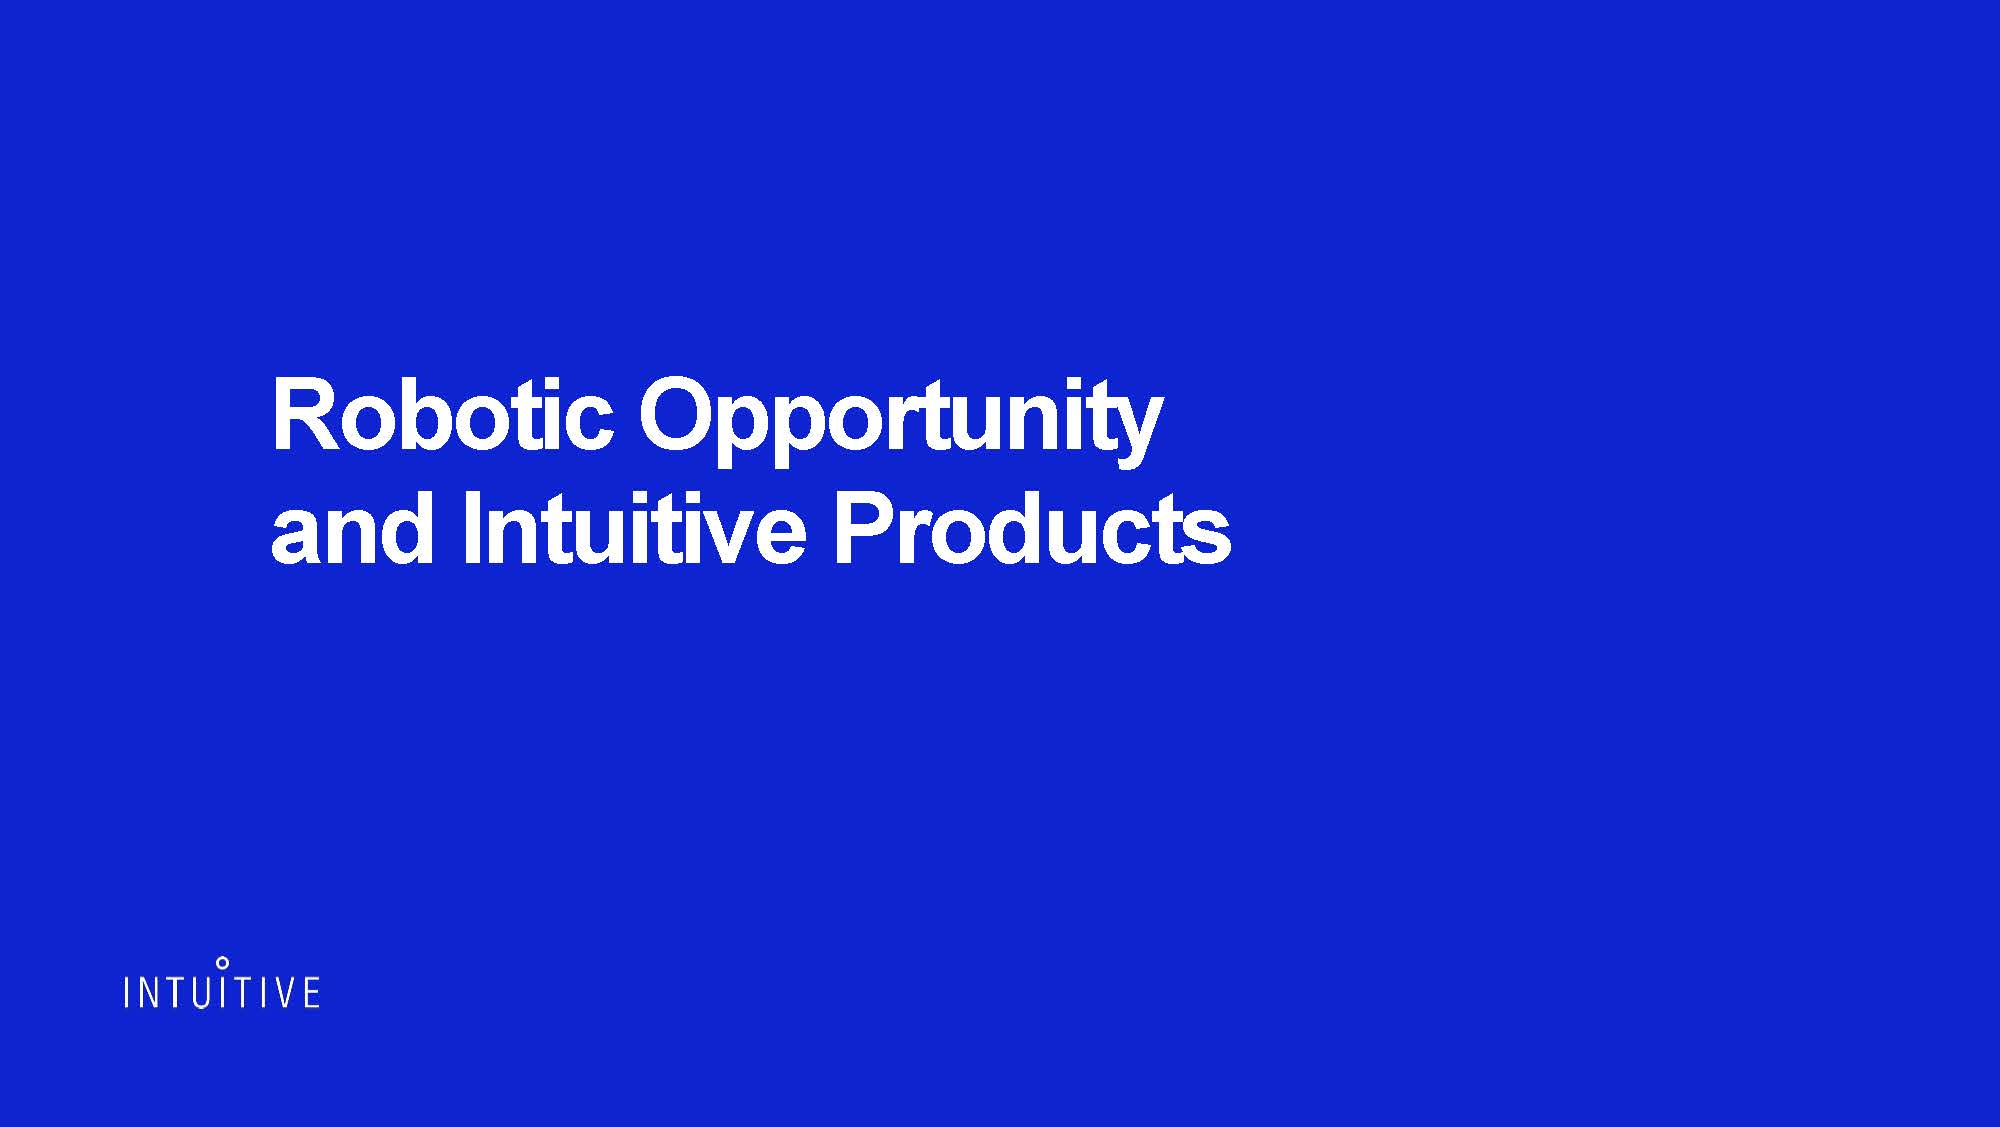 376731845-Intuitive-Surgical-Investor-Presentation-021218_Page_04.jpg